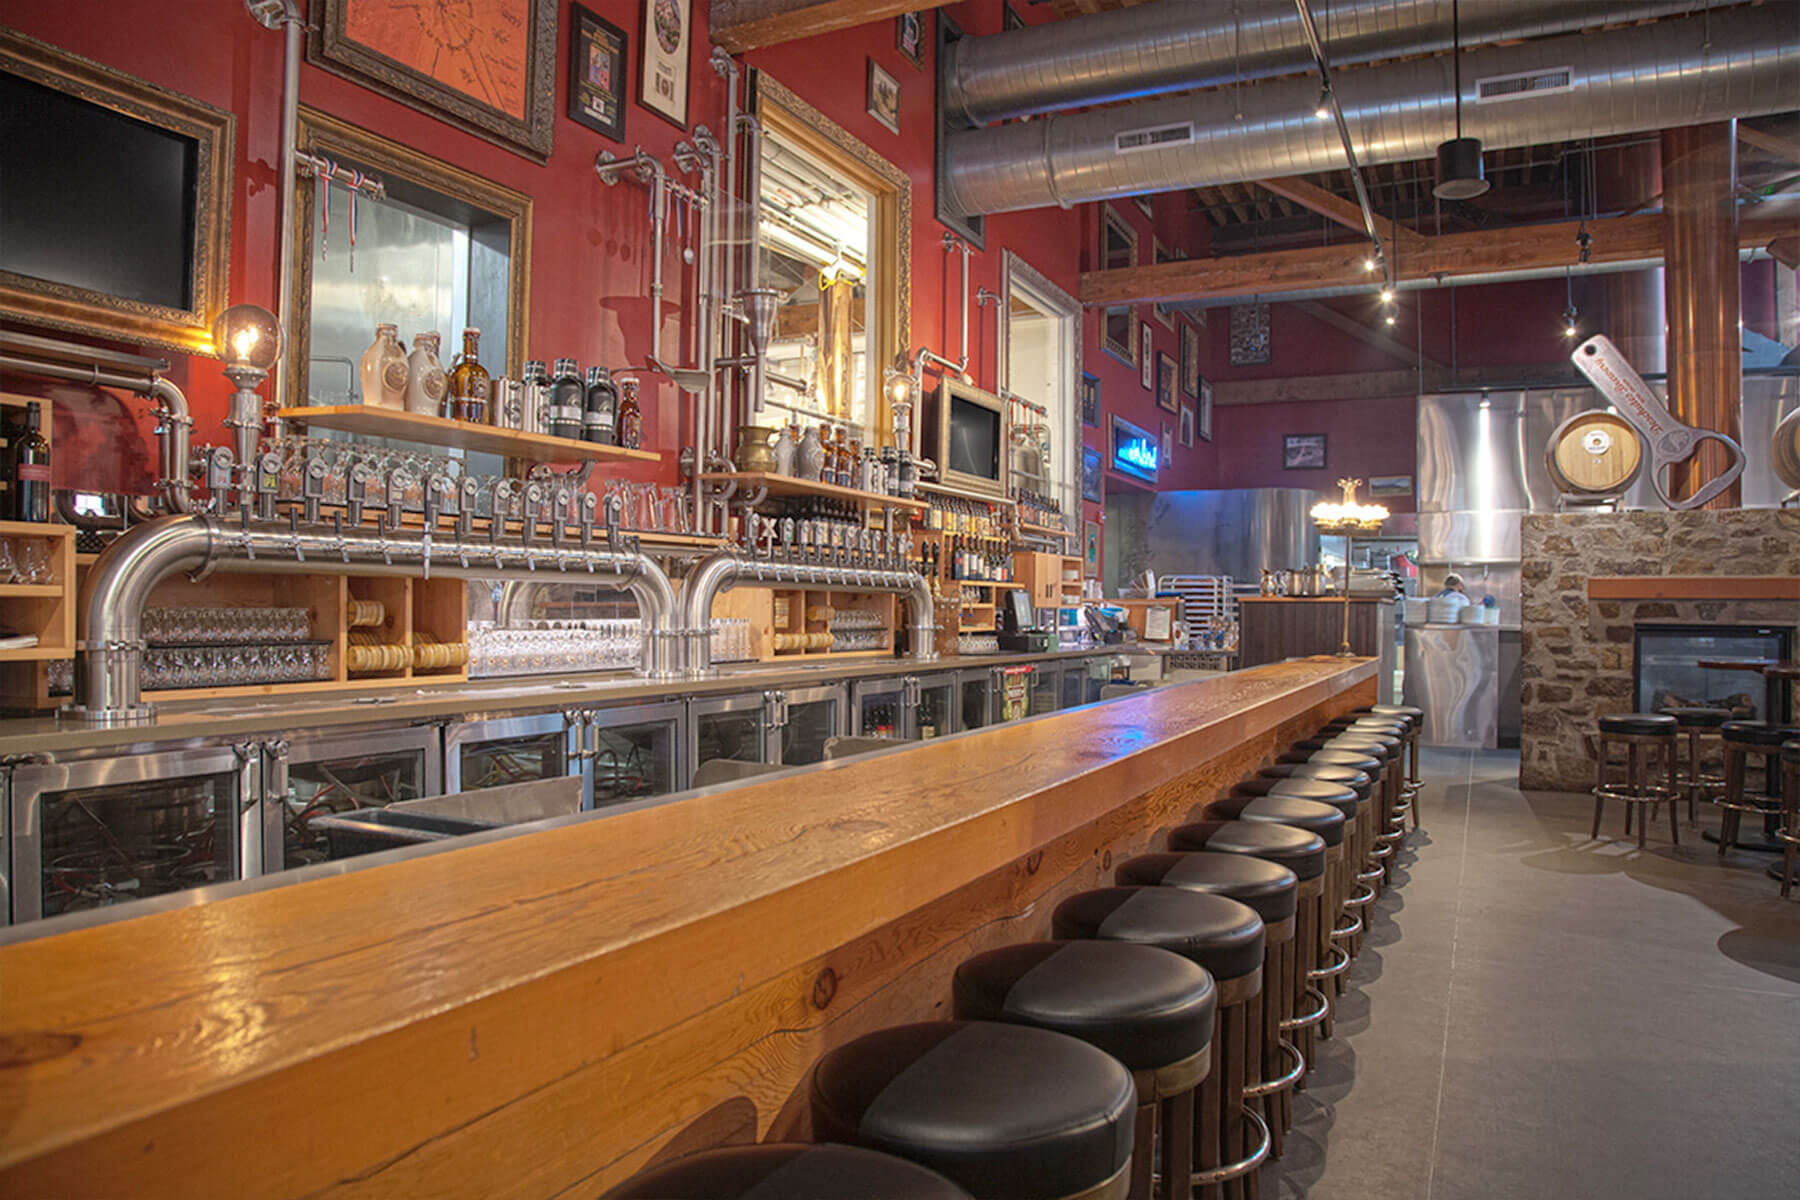 Inside the Deschutes Brewery Tap Room in Portland, Oregon